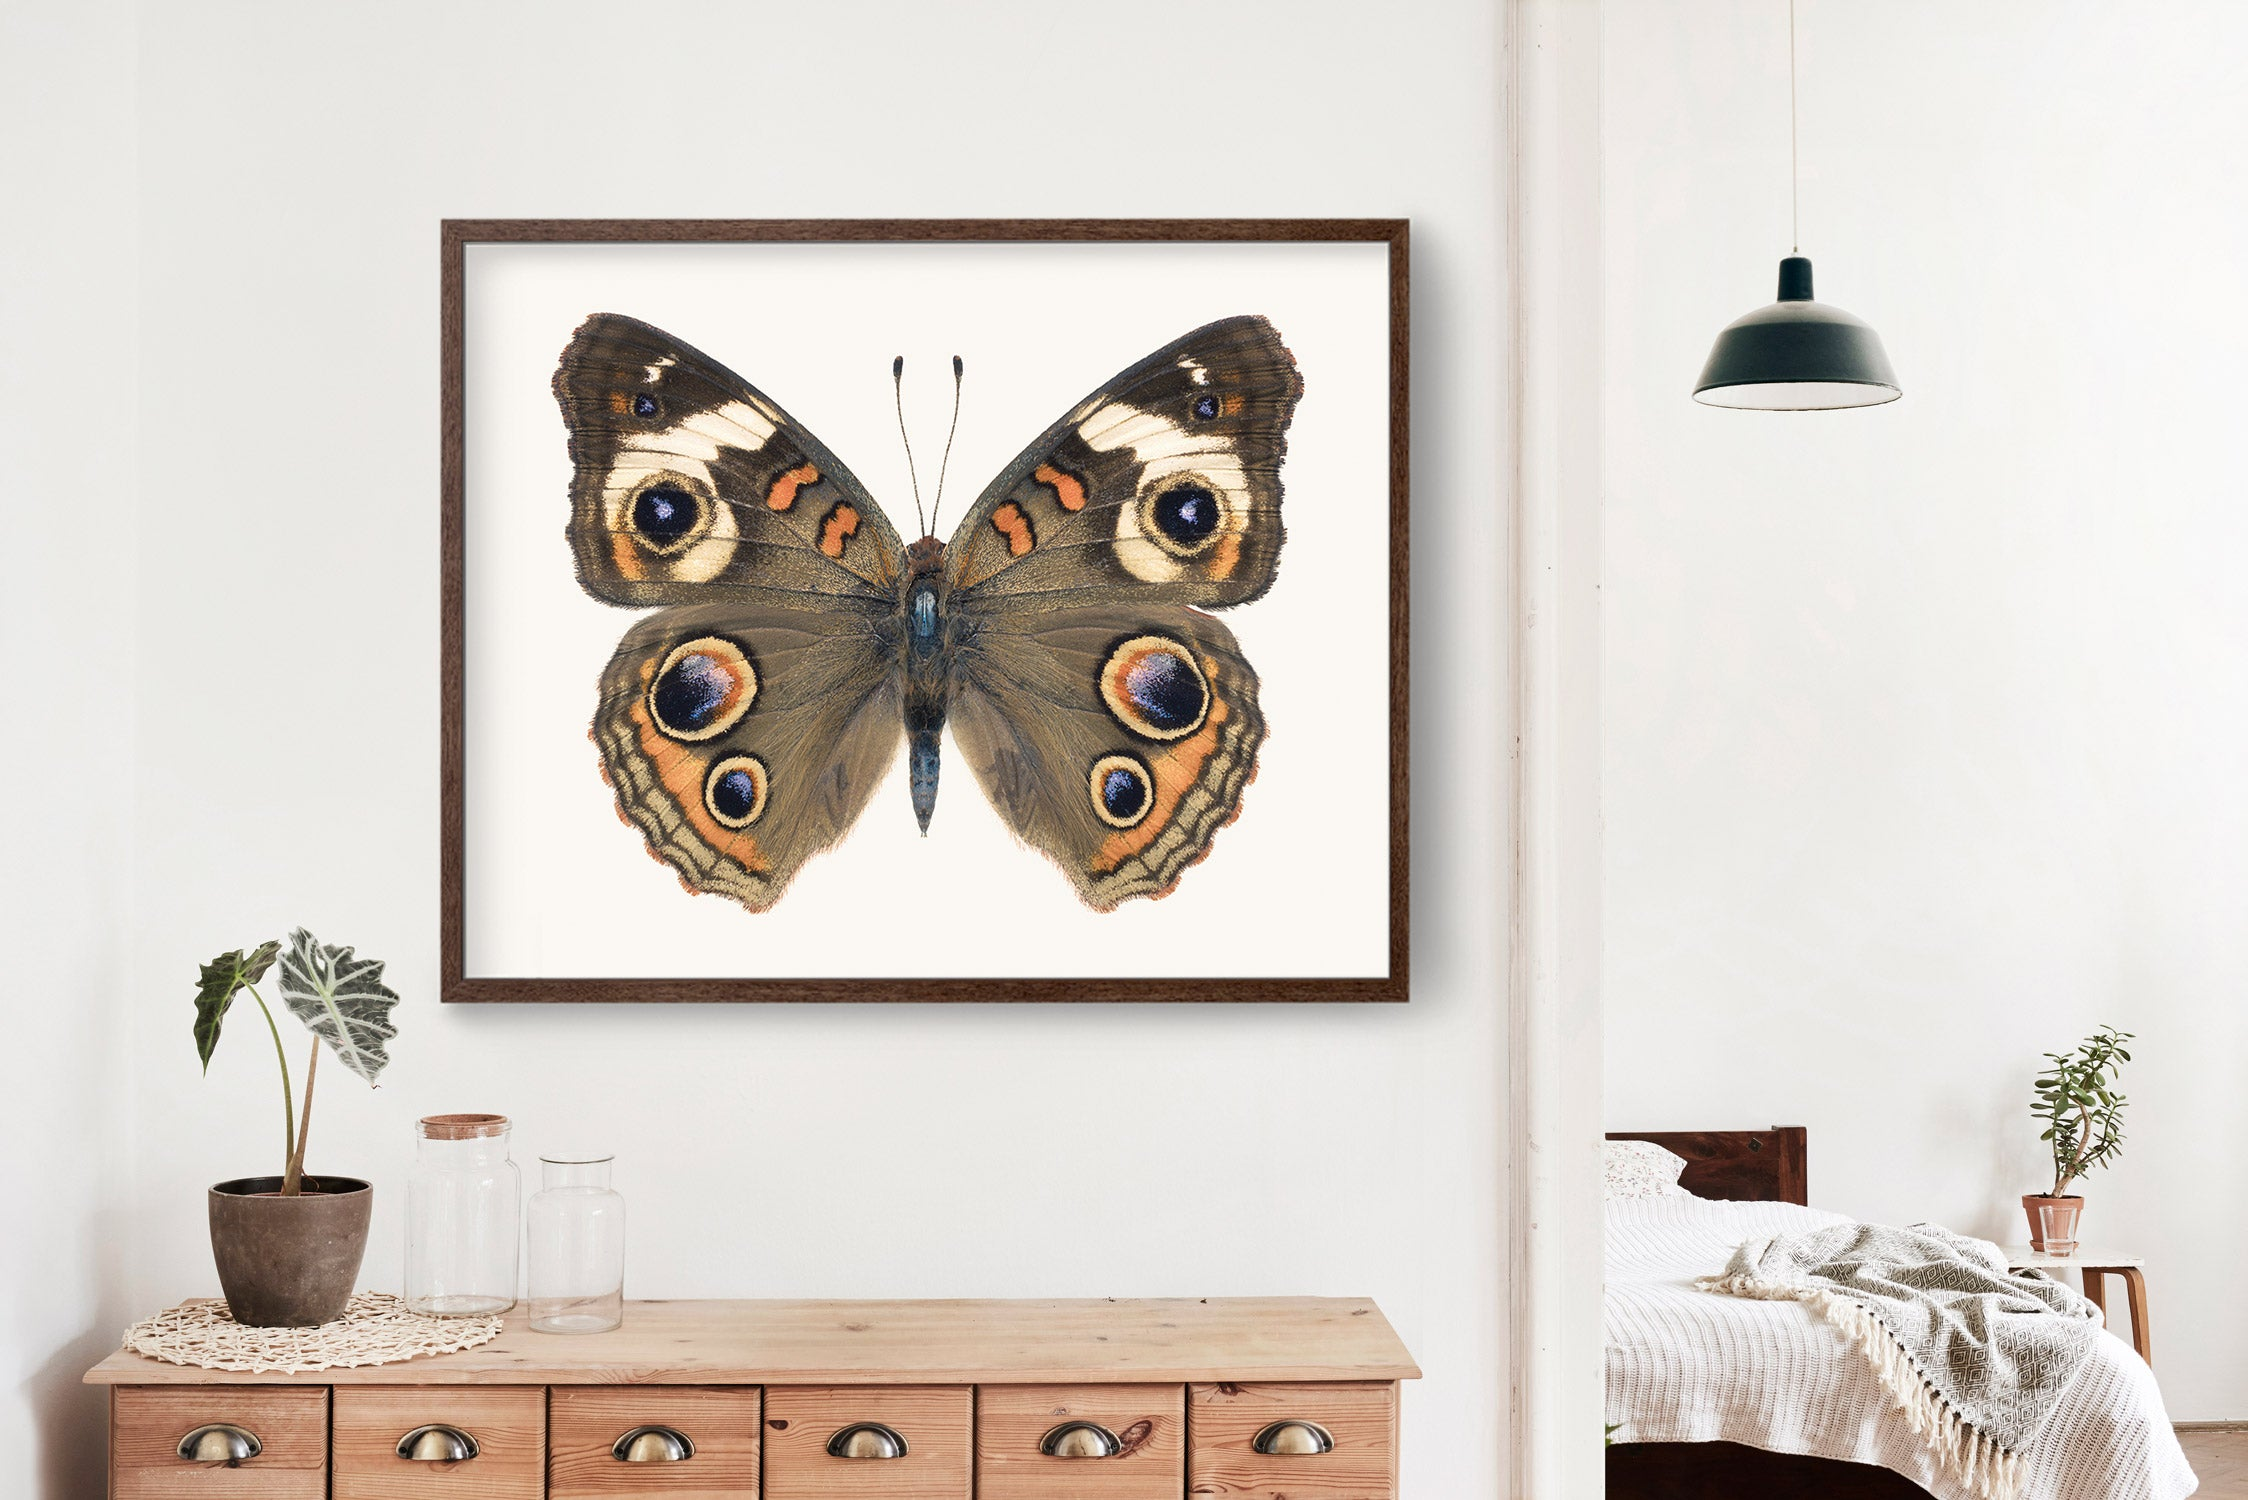 Butterfly No. 5 - the Common Buckeye Butterfly